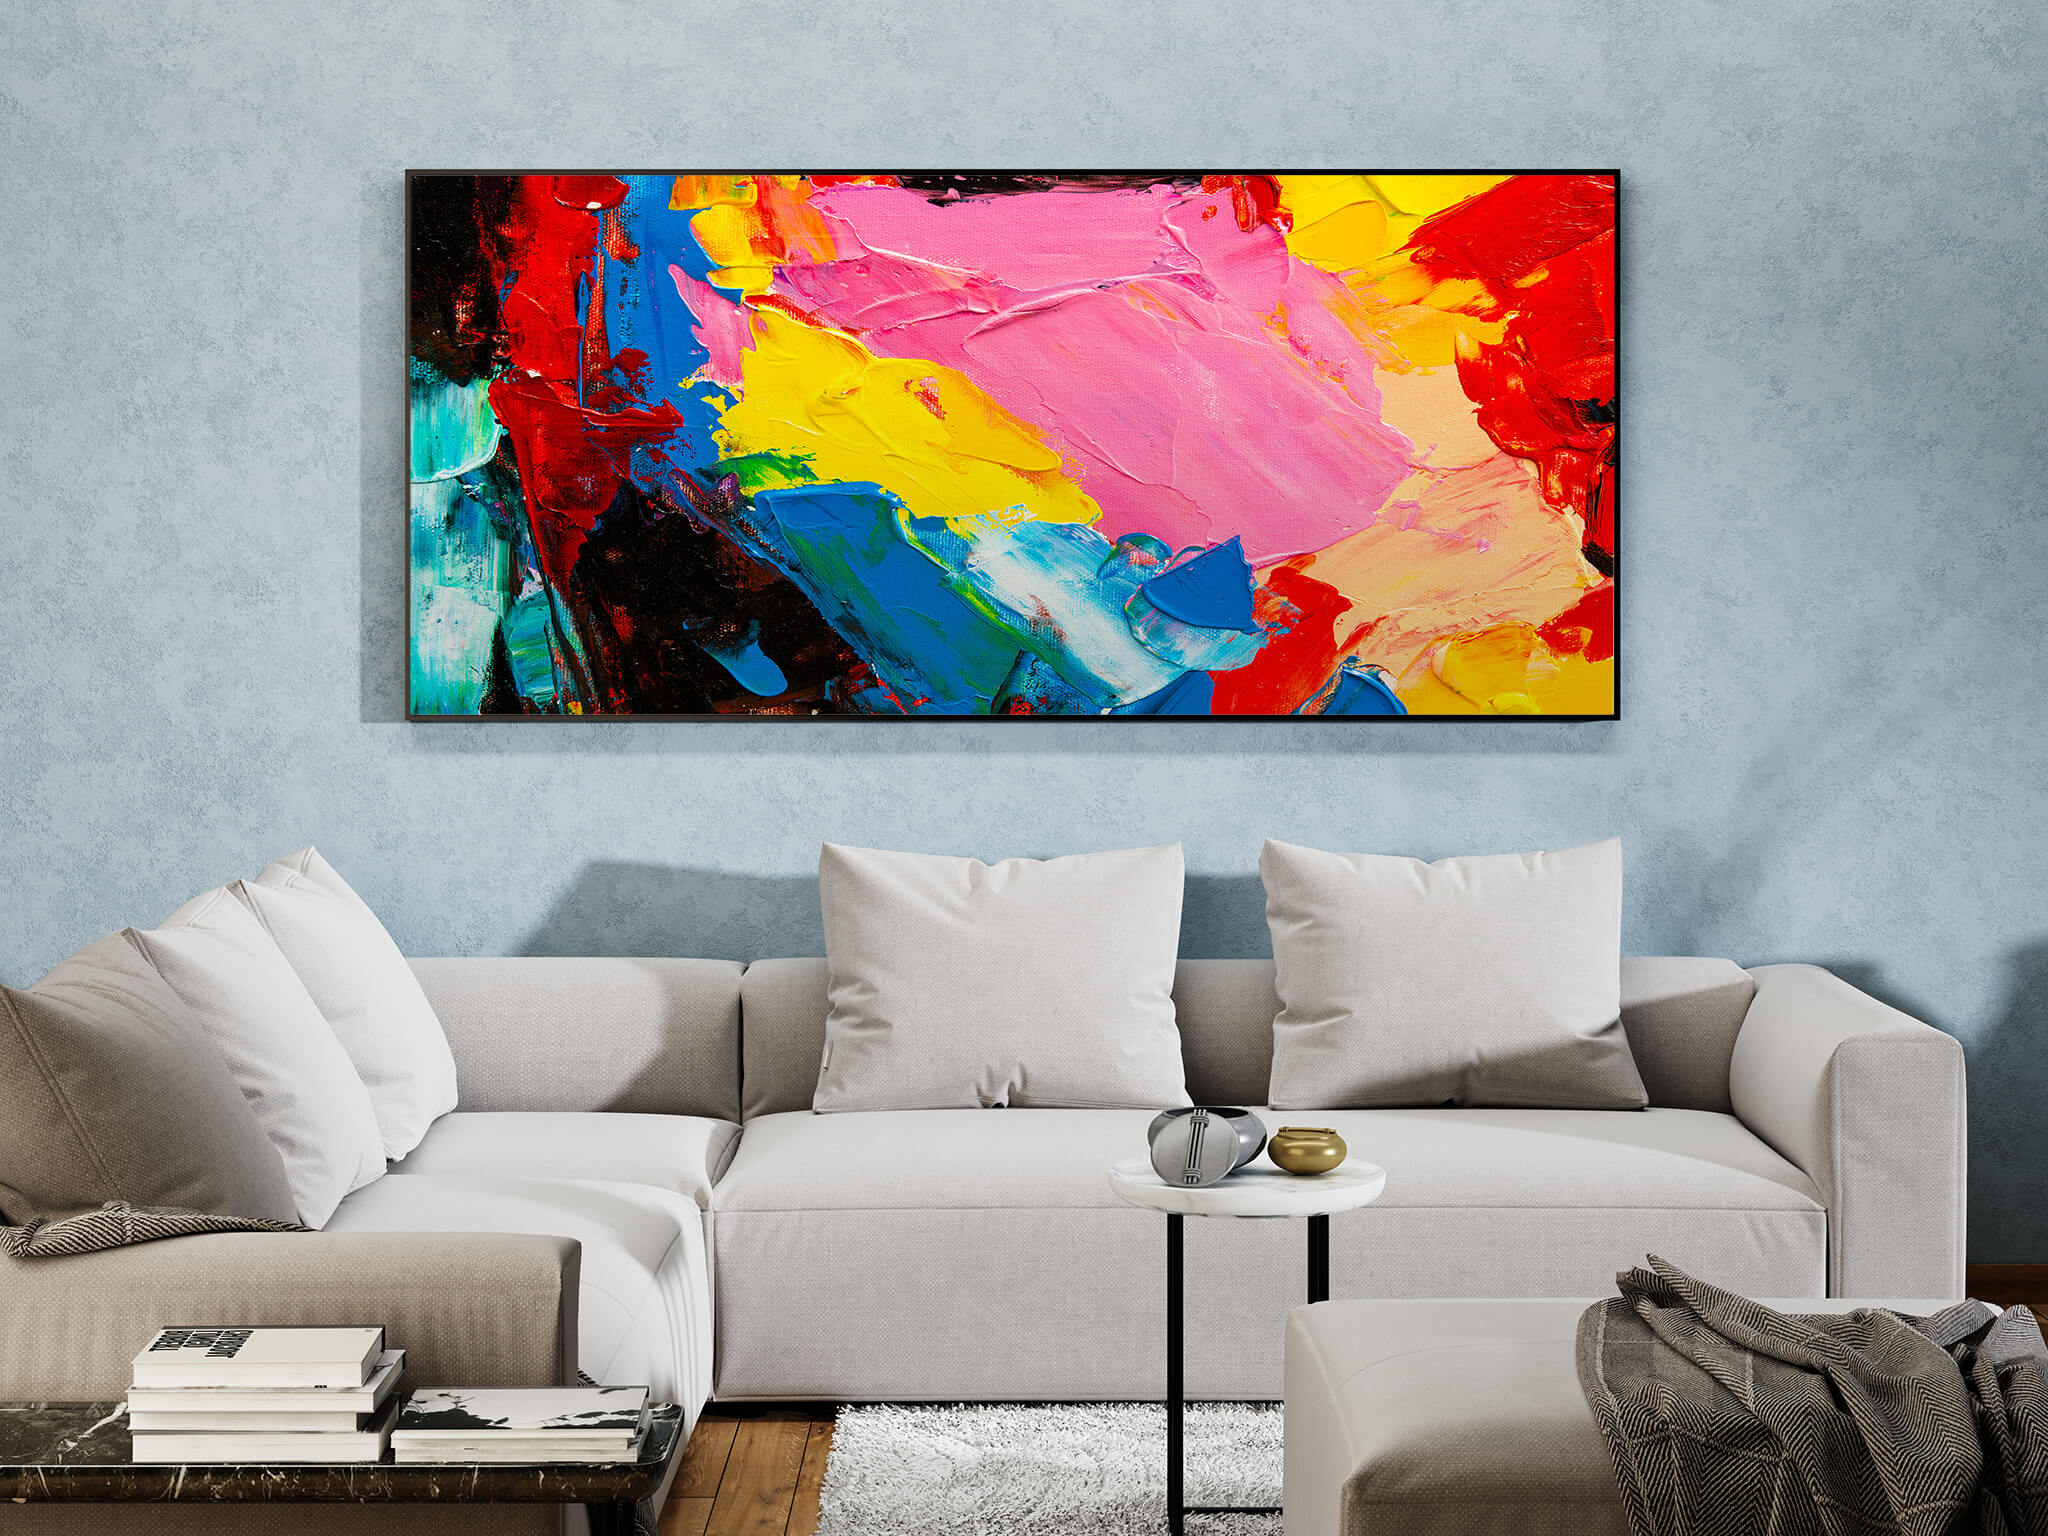 Large Painting in a Living Room